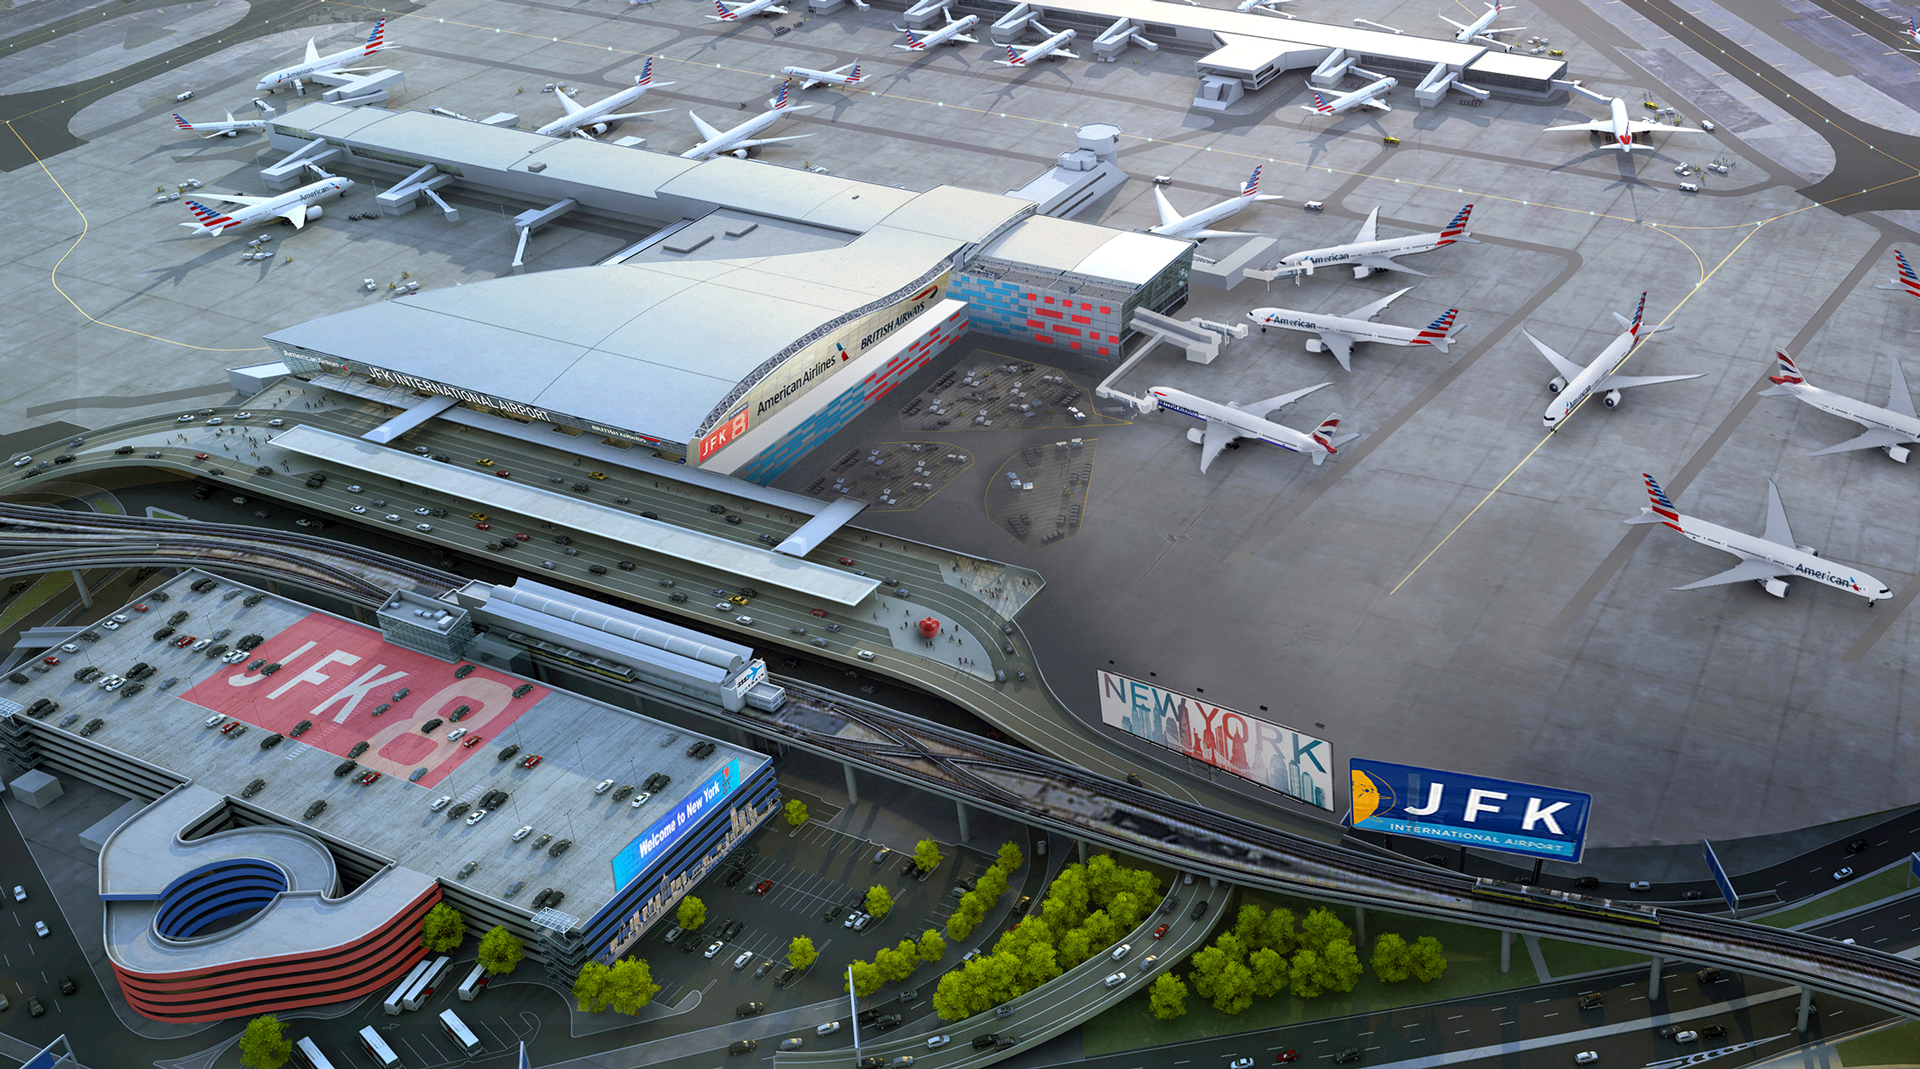 American Airlines and British Airways to Unify Operations at JFK Airport